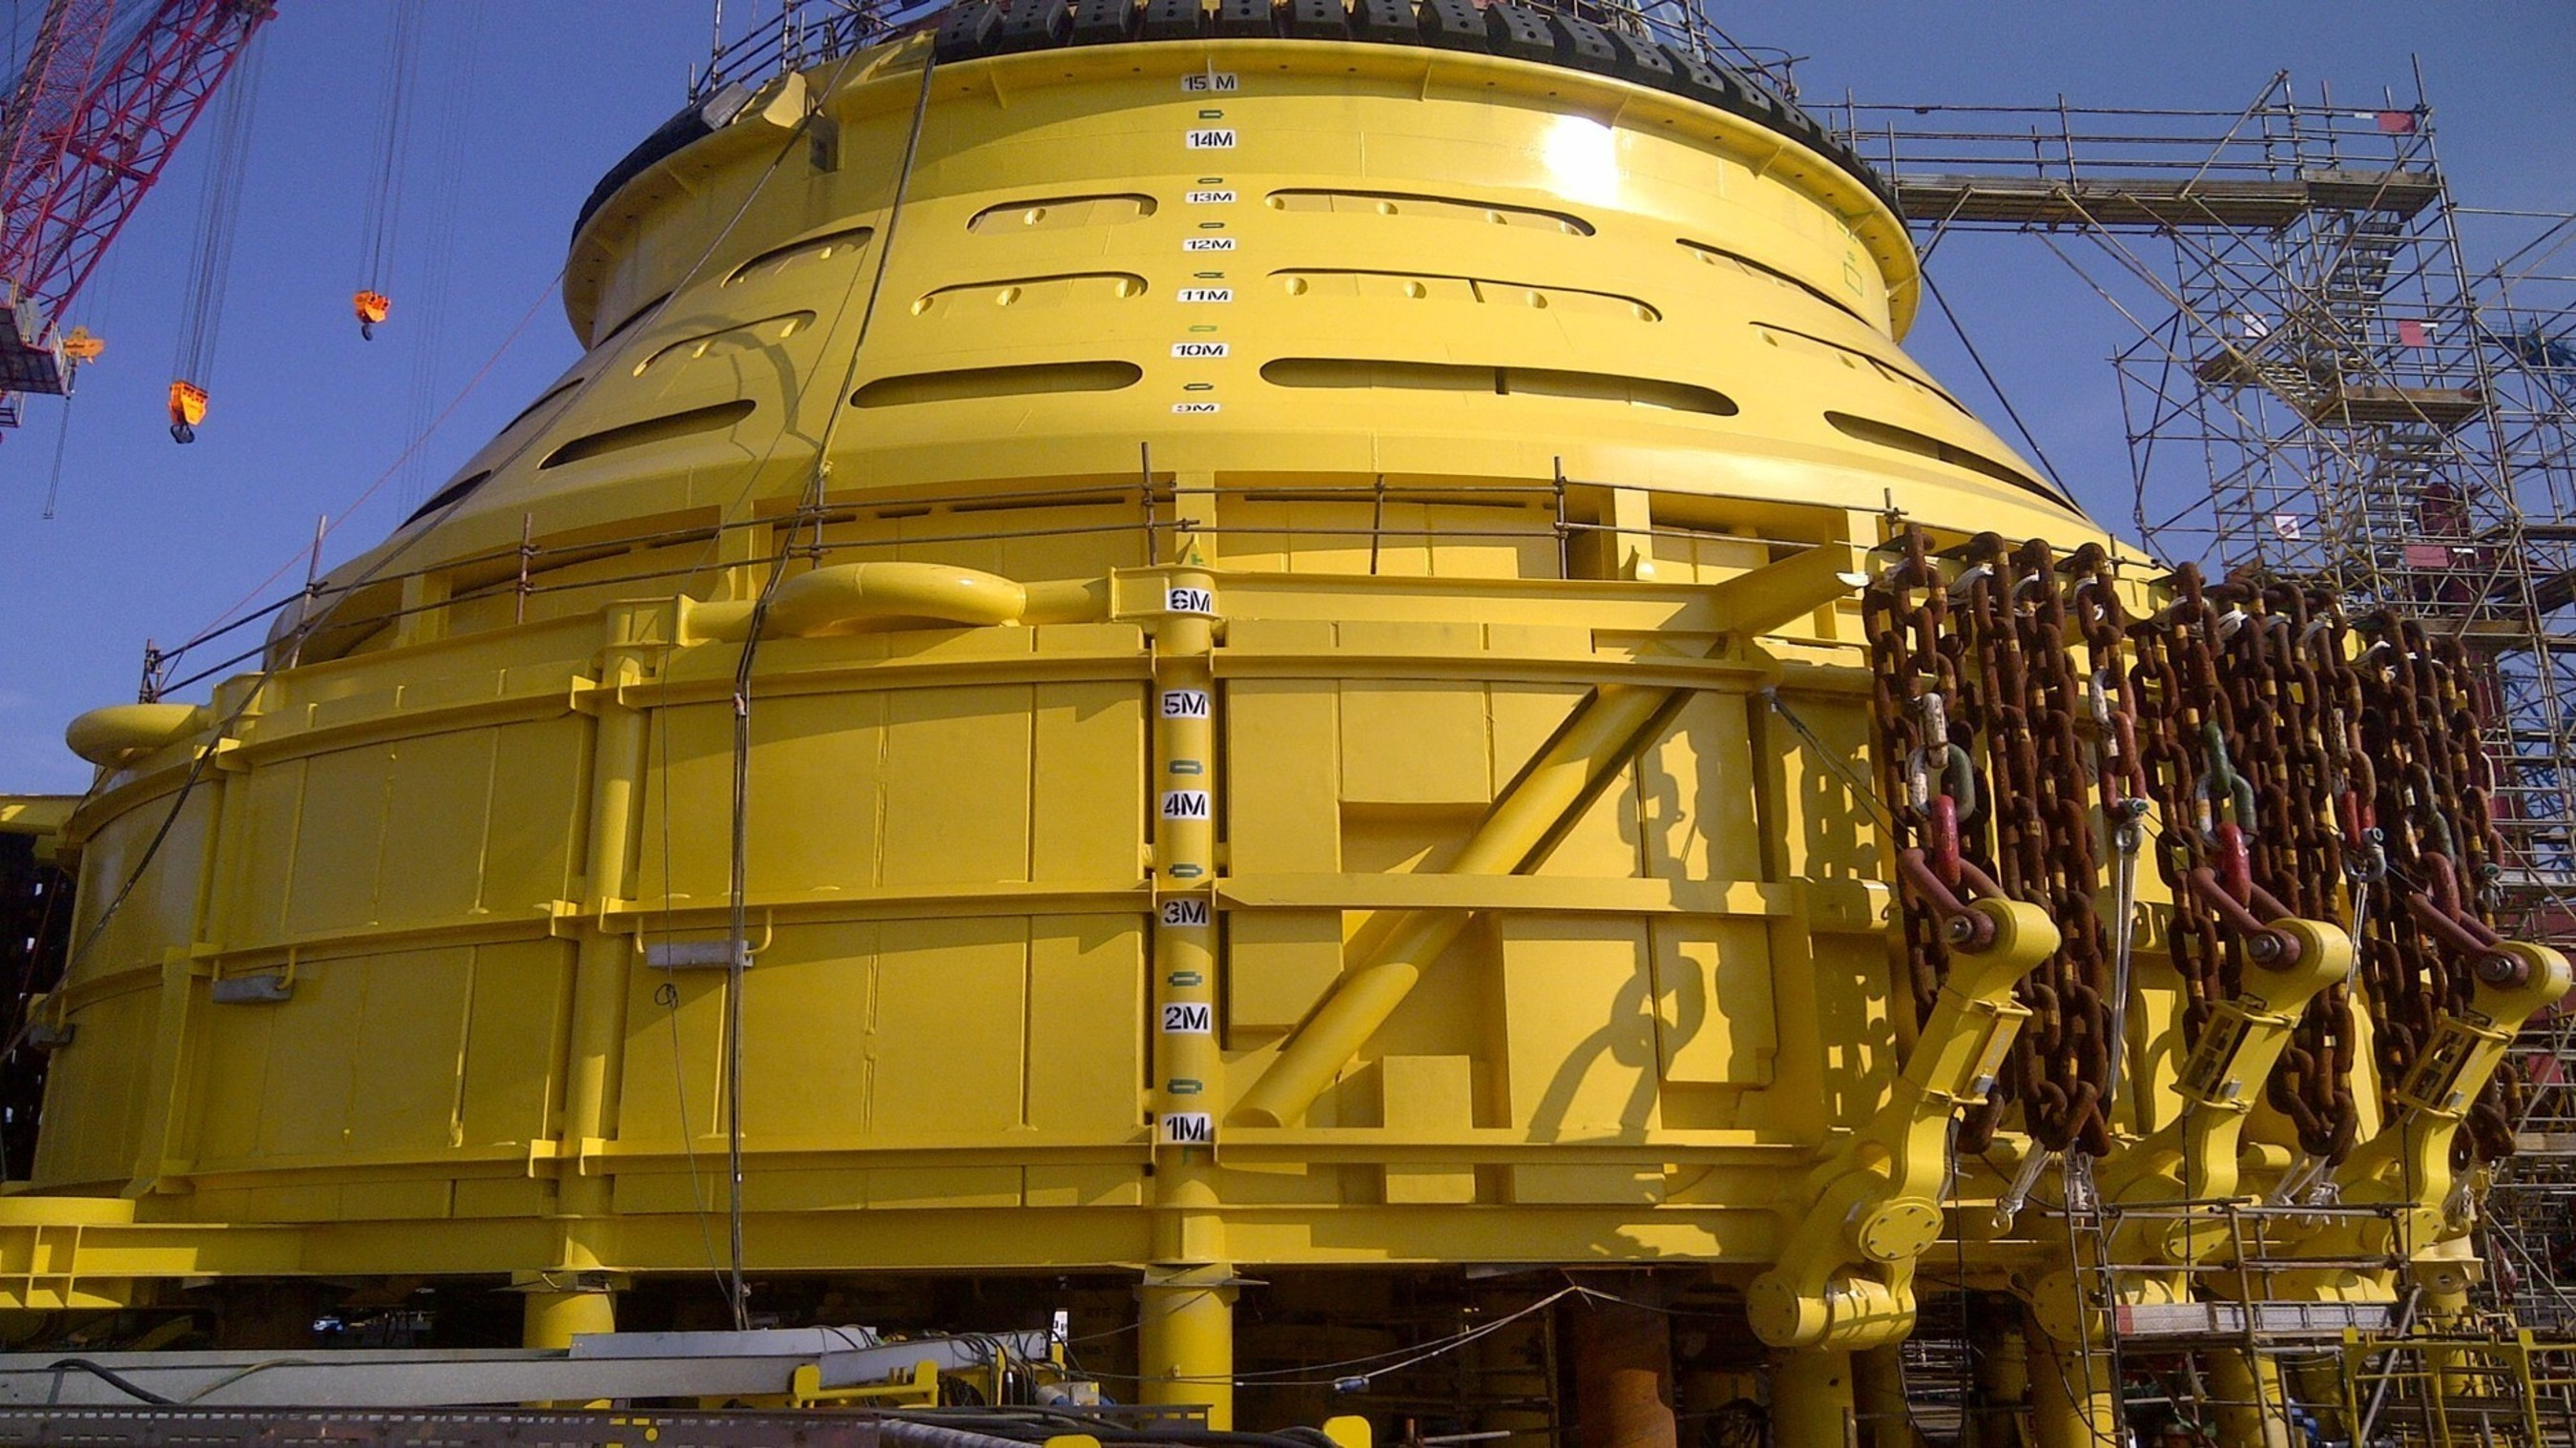 During severe weather, a turret with a disconnectable buoy allows the FPSO vessel to detach and safely sail away from the field.